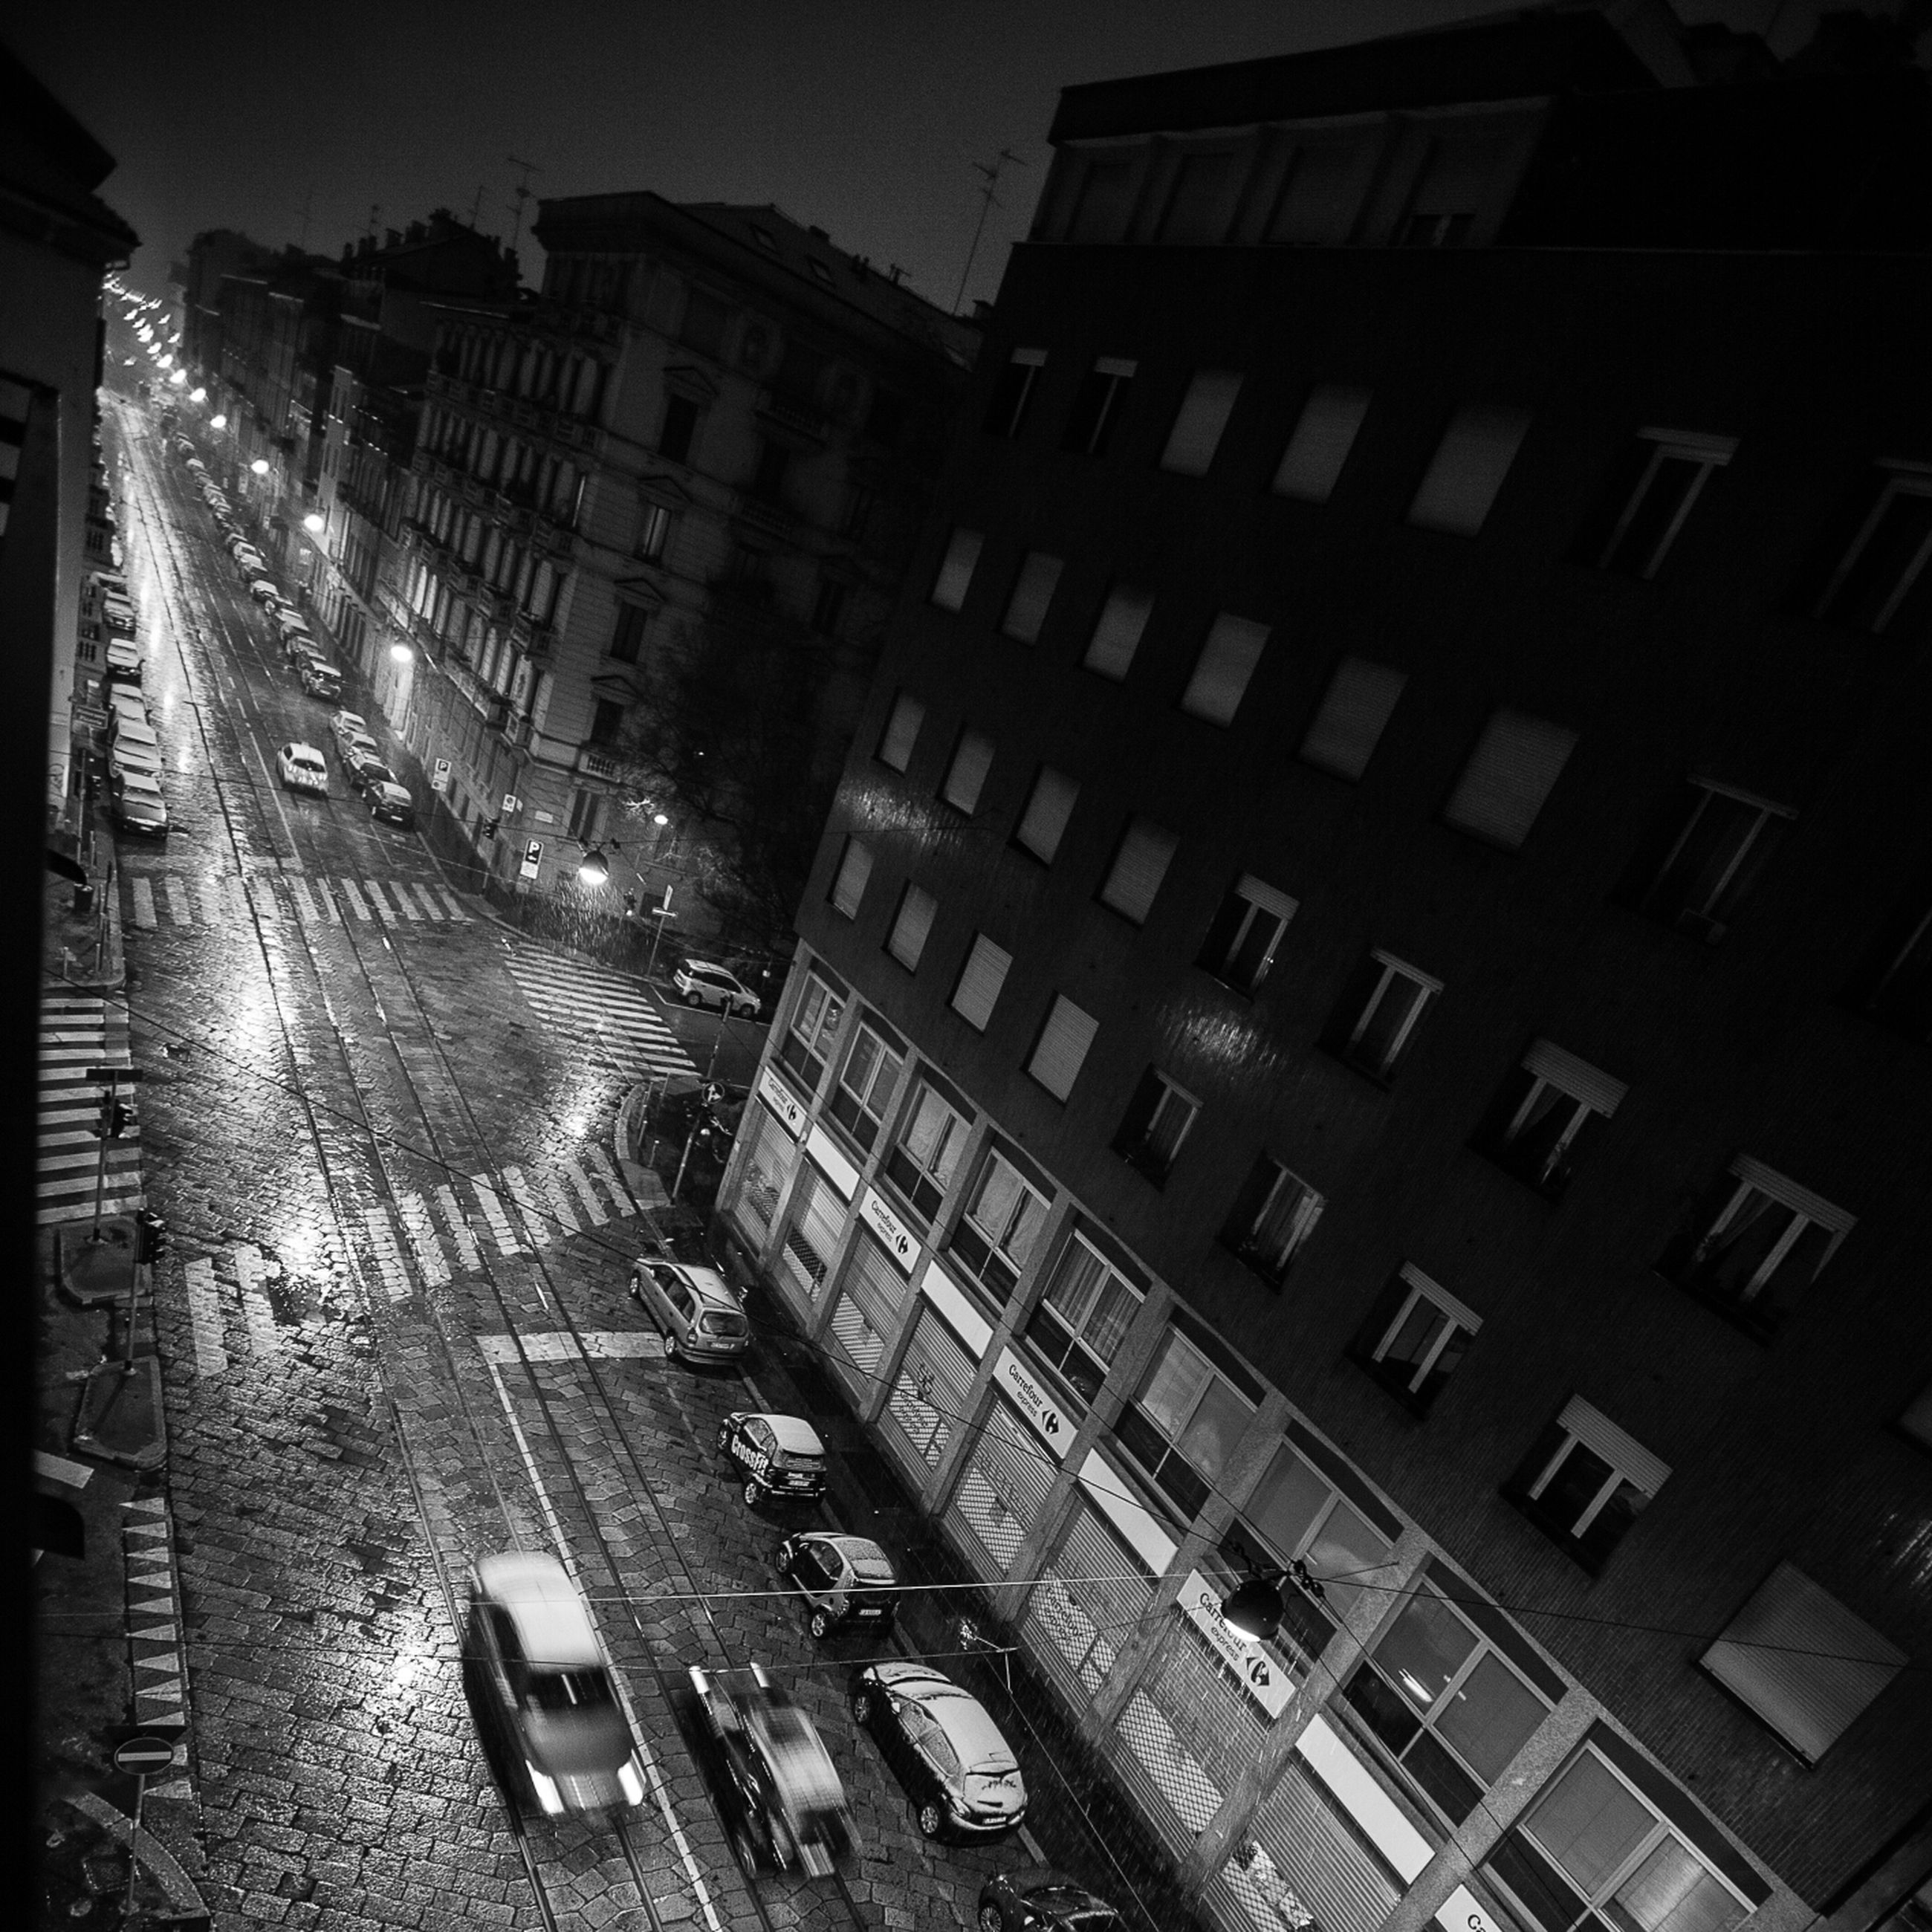 building exterior, architecture, built structure, city, building, illuminated, residential building, night, street, city life, window, residential structure, office building, high angle view, outdoors, low angle view, city street, no people, modern, street light